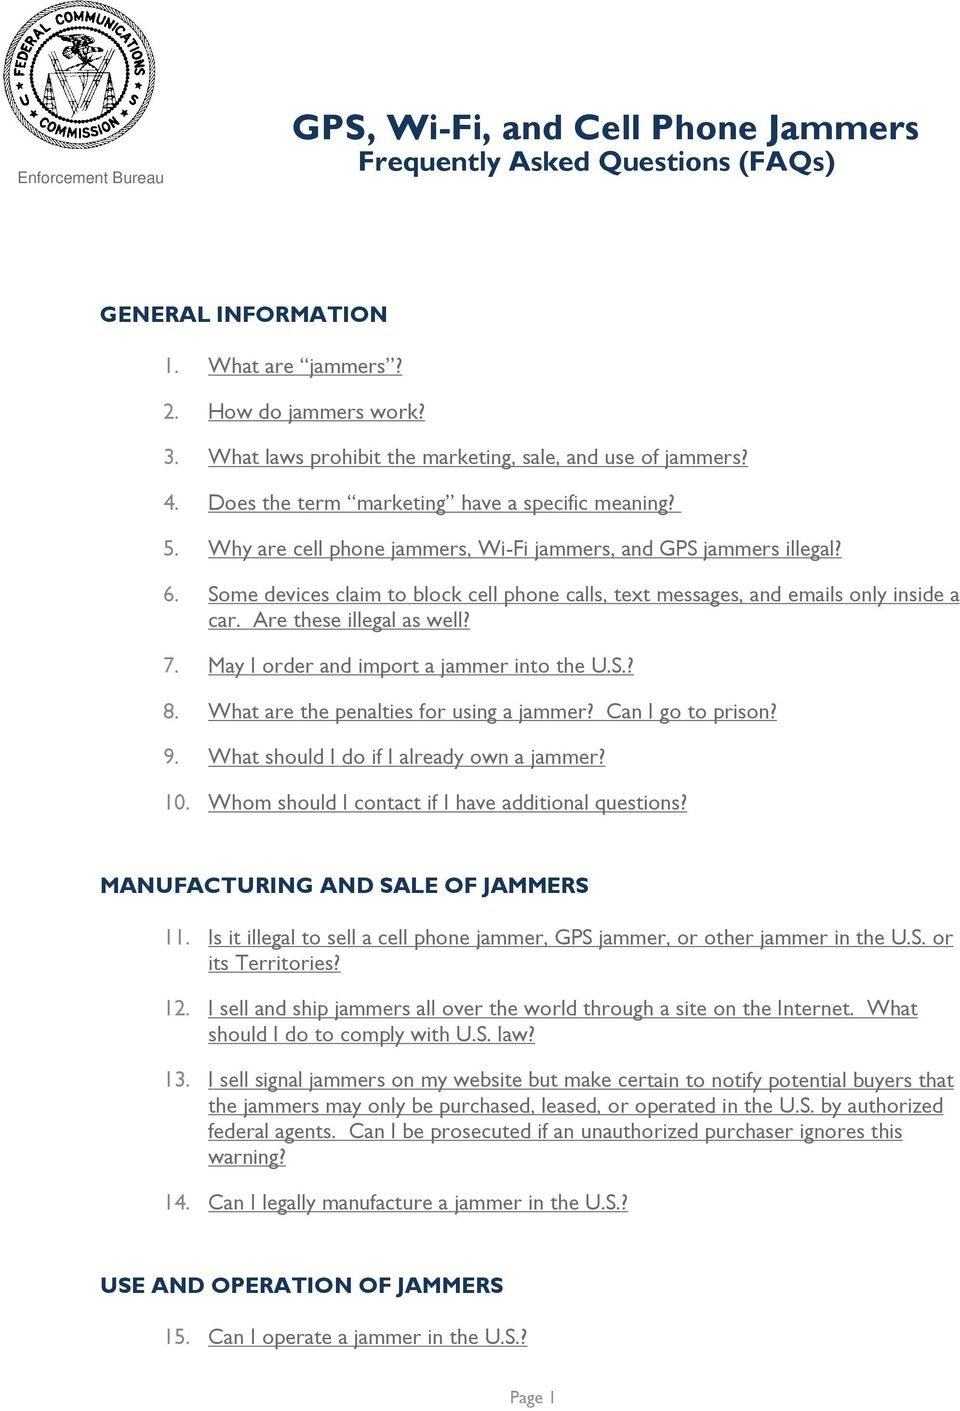 GPS, Wi-Fi, and Cell Phone Jammers Frequently Asked